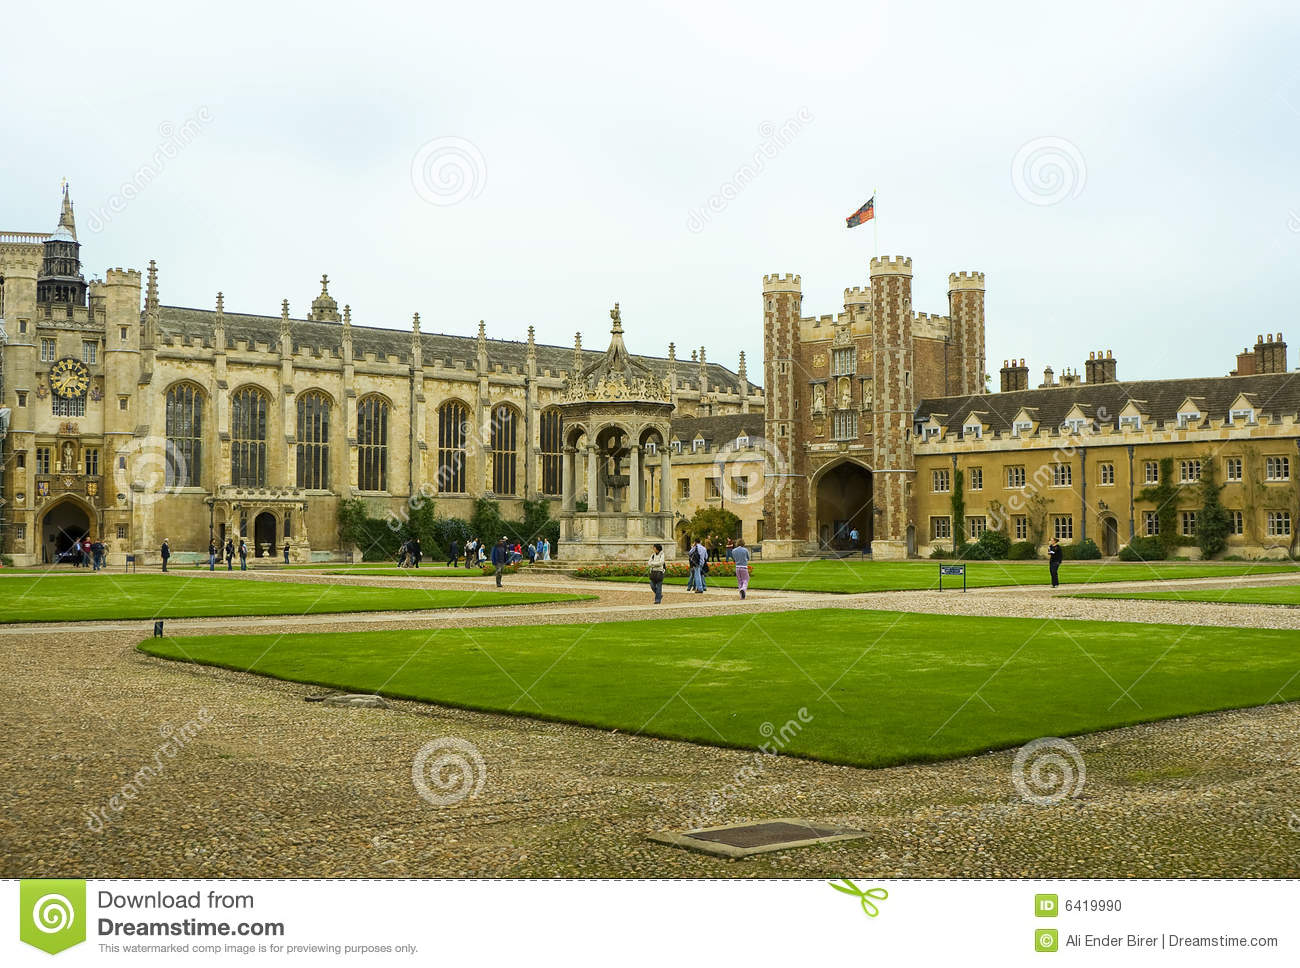 map picture of united states with Stock Photo Cambridge University C Us Image6419990 on Stock Photo Cambridge University C us Image6419990 together with Stock Image Thick Book Image12765561 likewise File USA Deep South in addition Ioannina Greece further File Gold Quartz 188388.